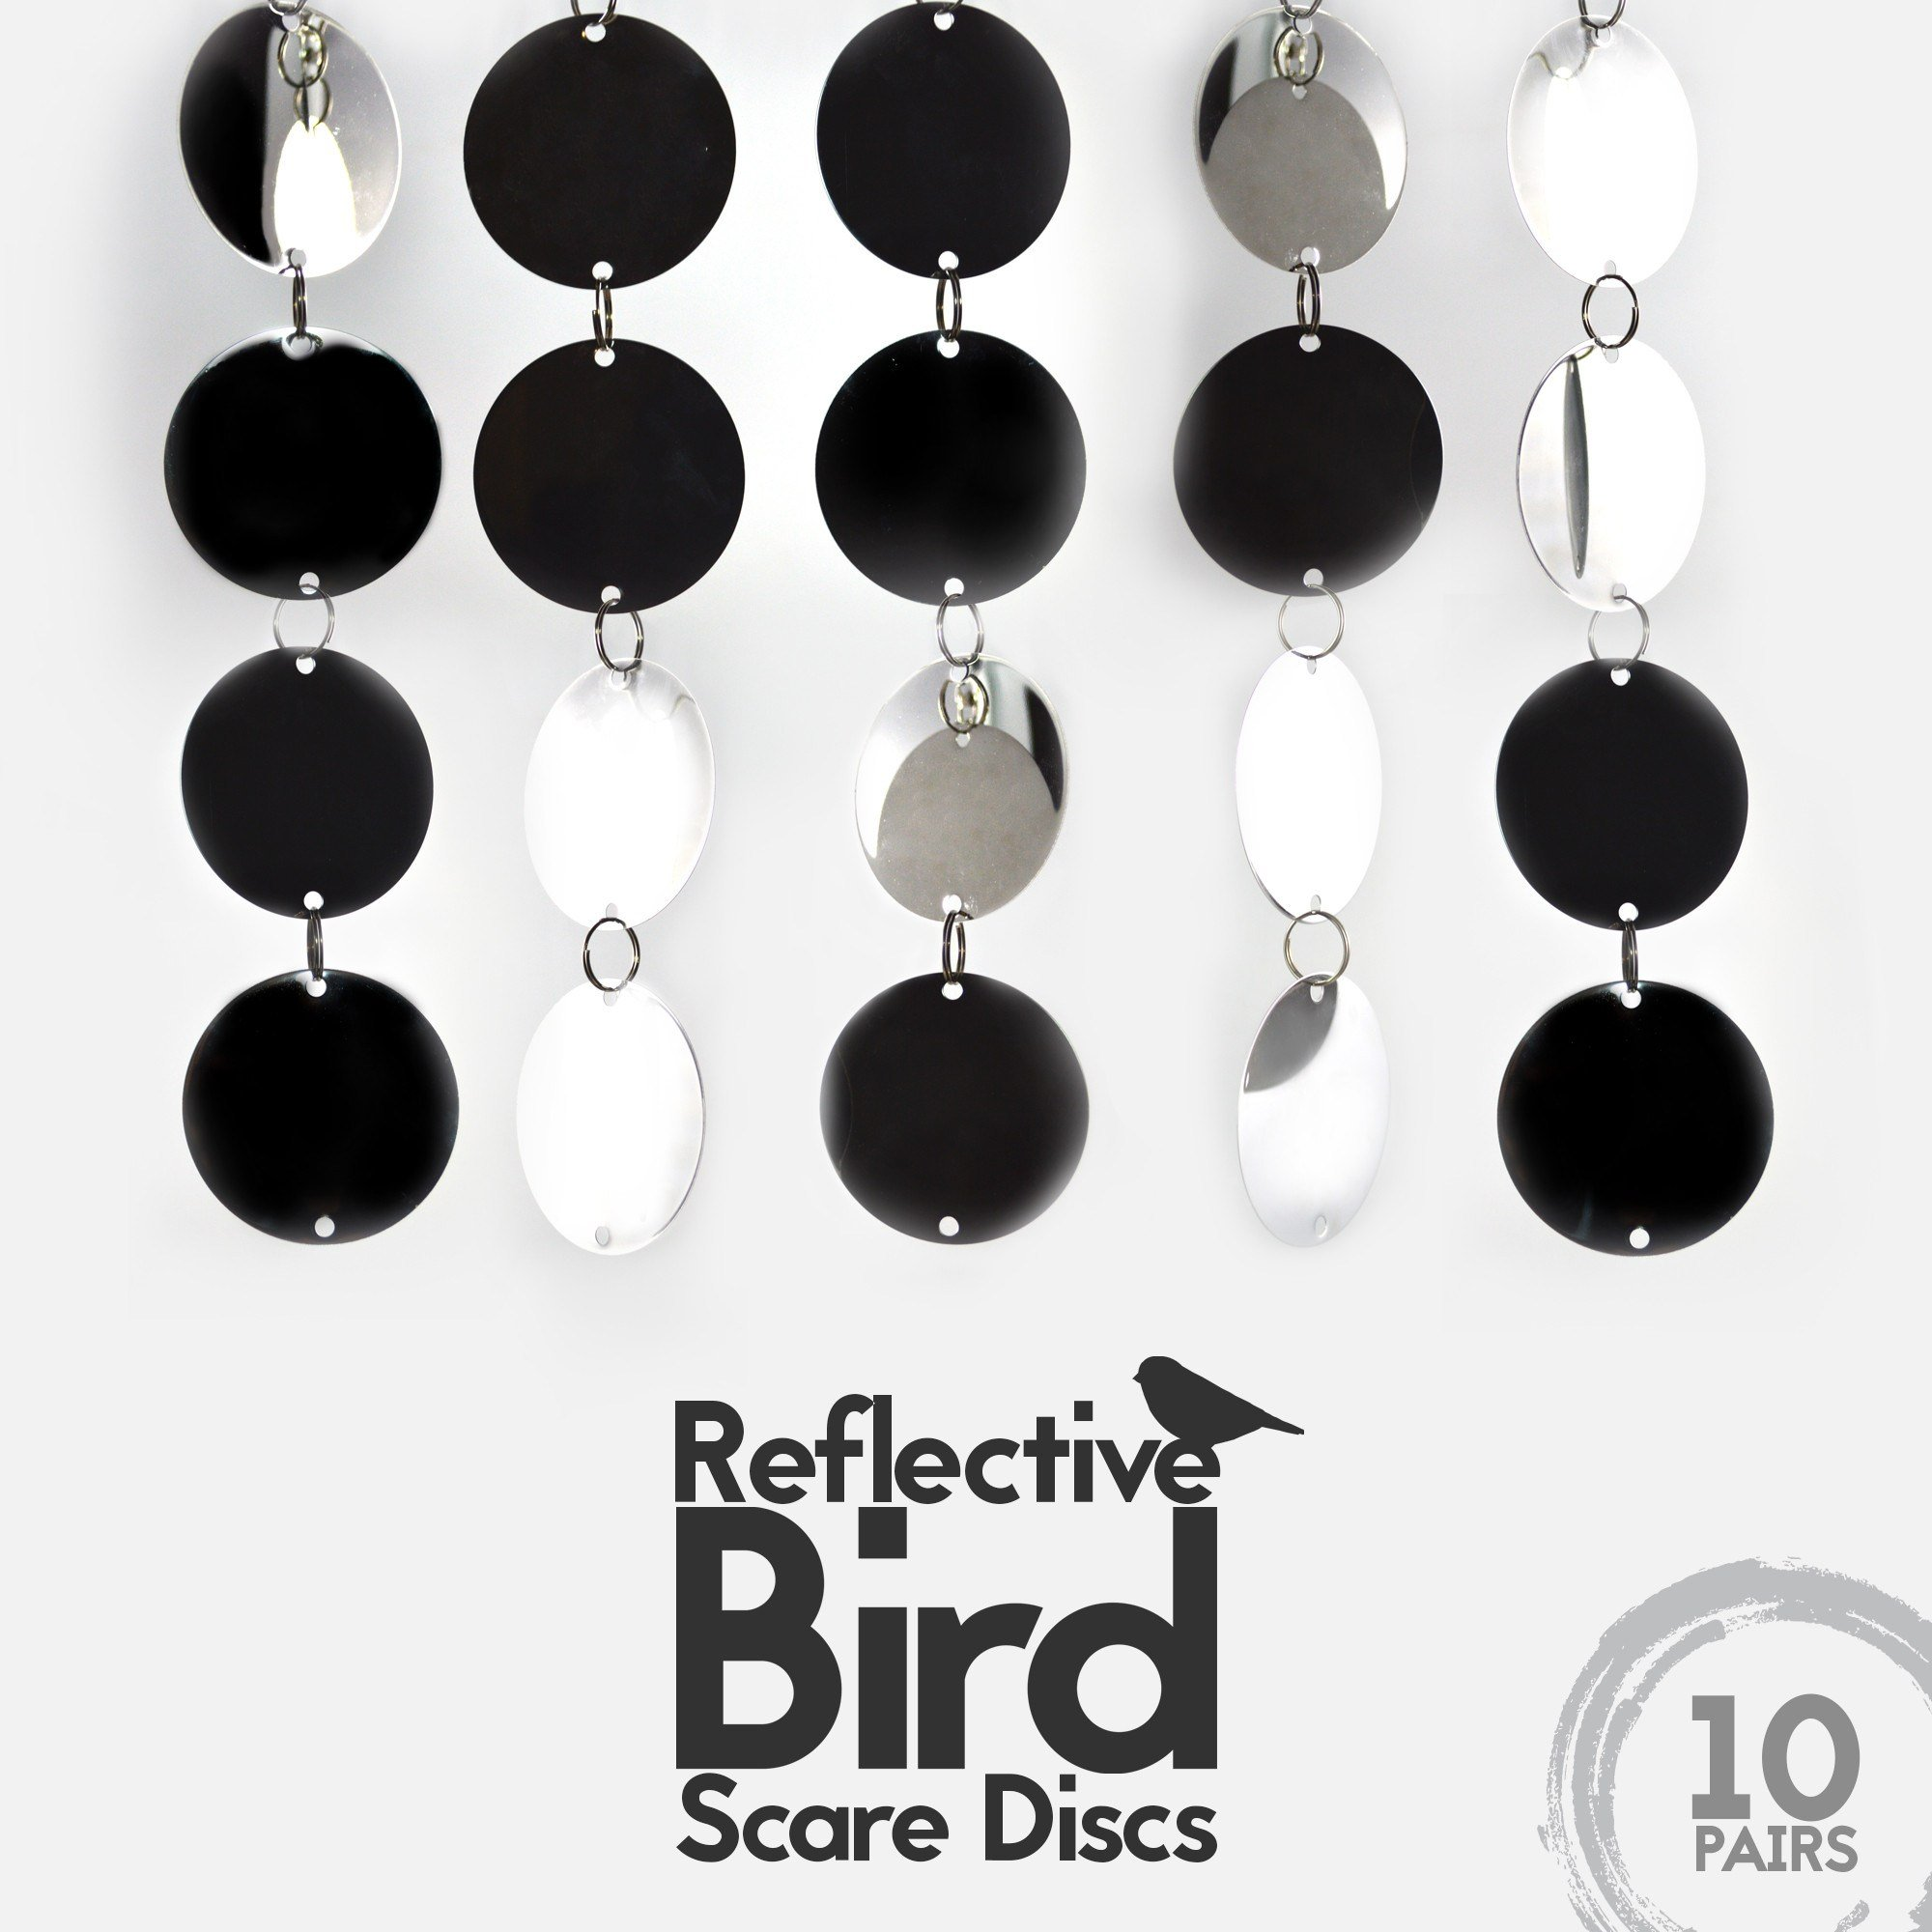 Bird Repellent Discs (10-PC with 20 Large Disks) - Highly Reflective Double-Sided Bird Deterrent Discs to Keep All Birds Away